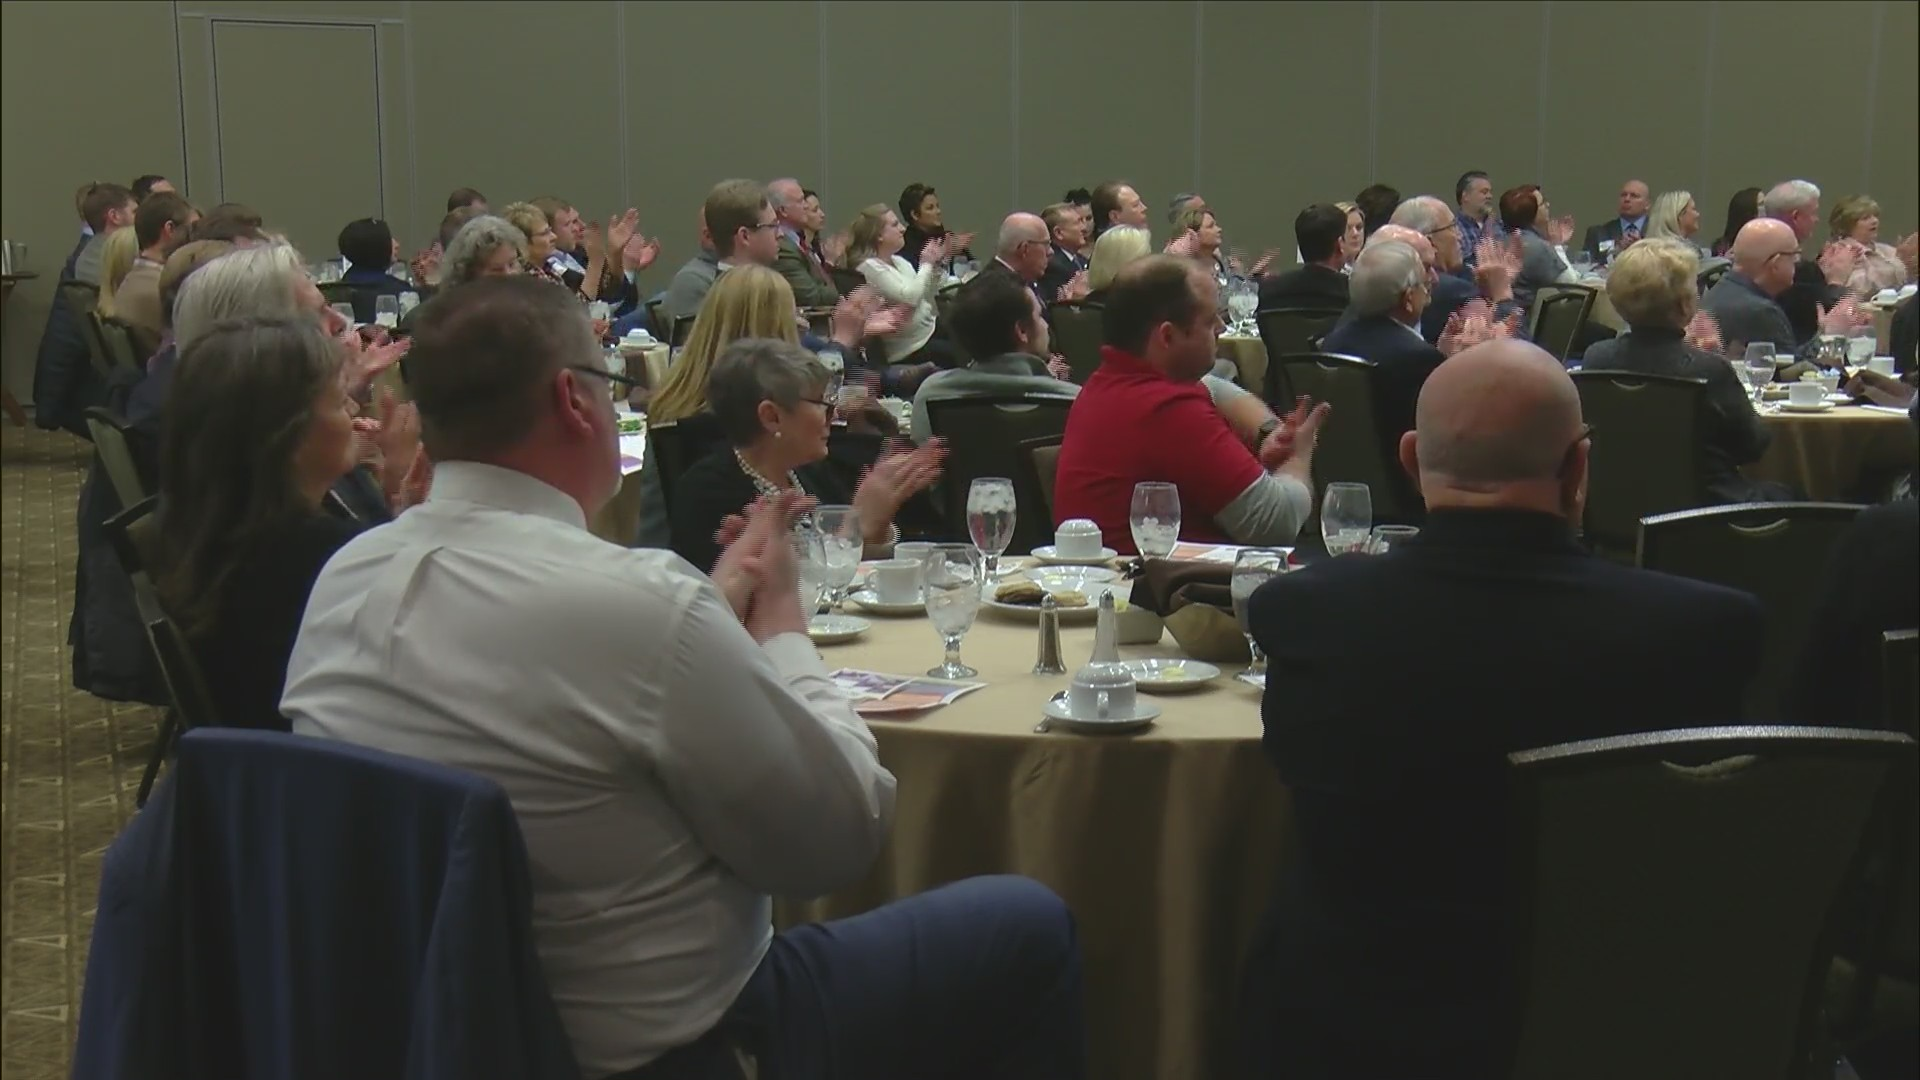 Bettendorf State of the City Address was hosted on Wednesday at the Waterfront Convention Center.